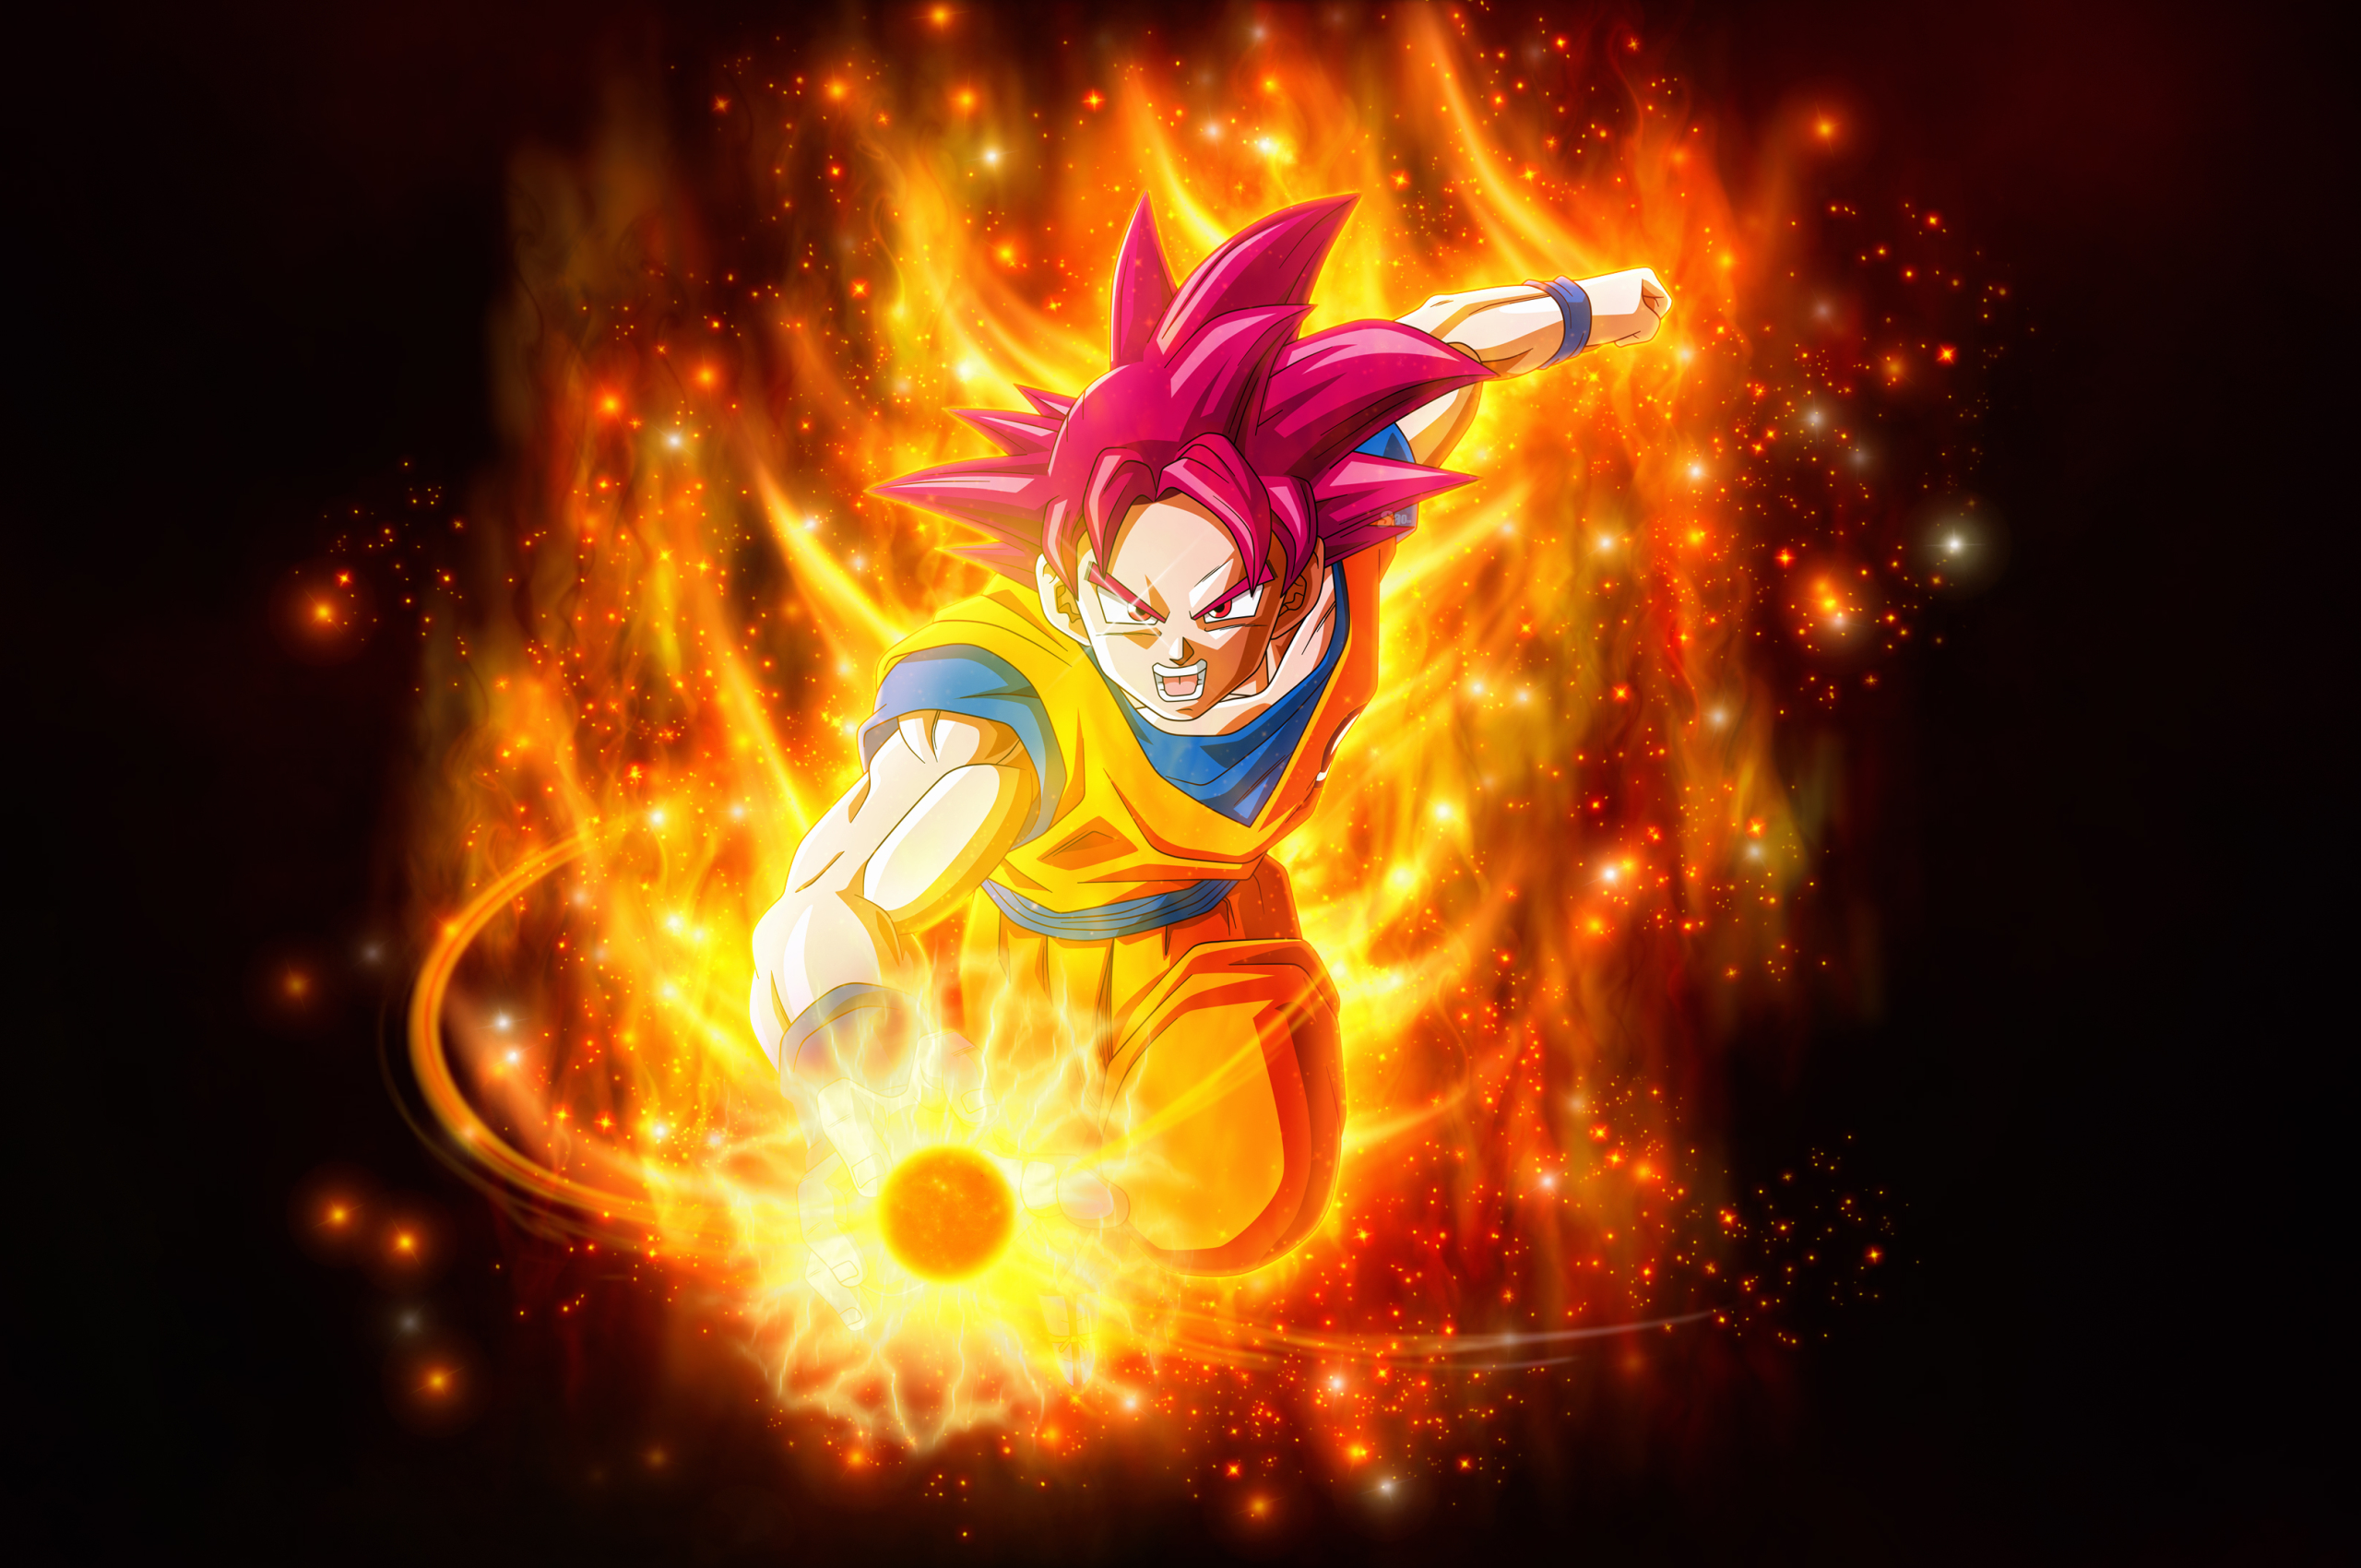 2560x1700 Super Saiyan God Dragon Ball Super Super Chromebook Pixel Wallpaper Hd Anime 4k Wallpapers Images Photos And Background